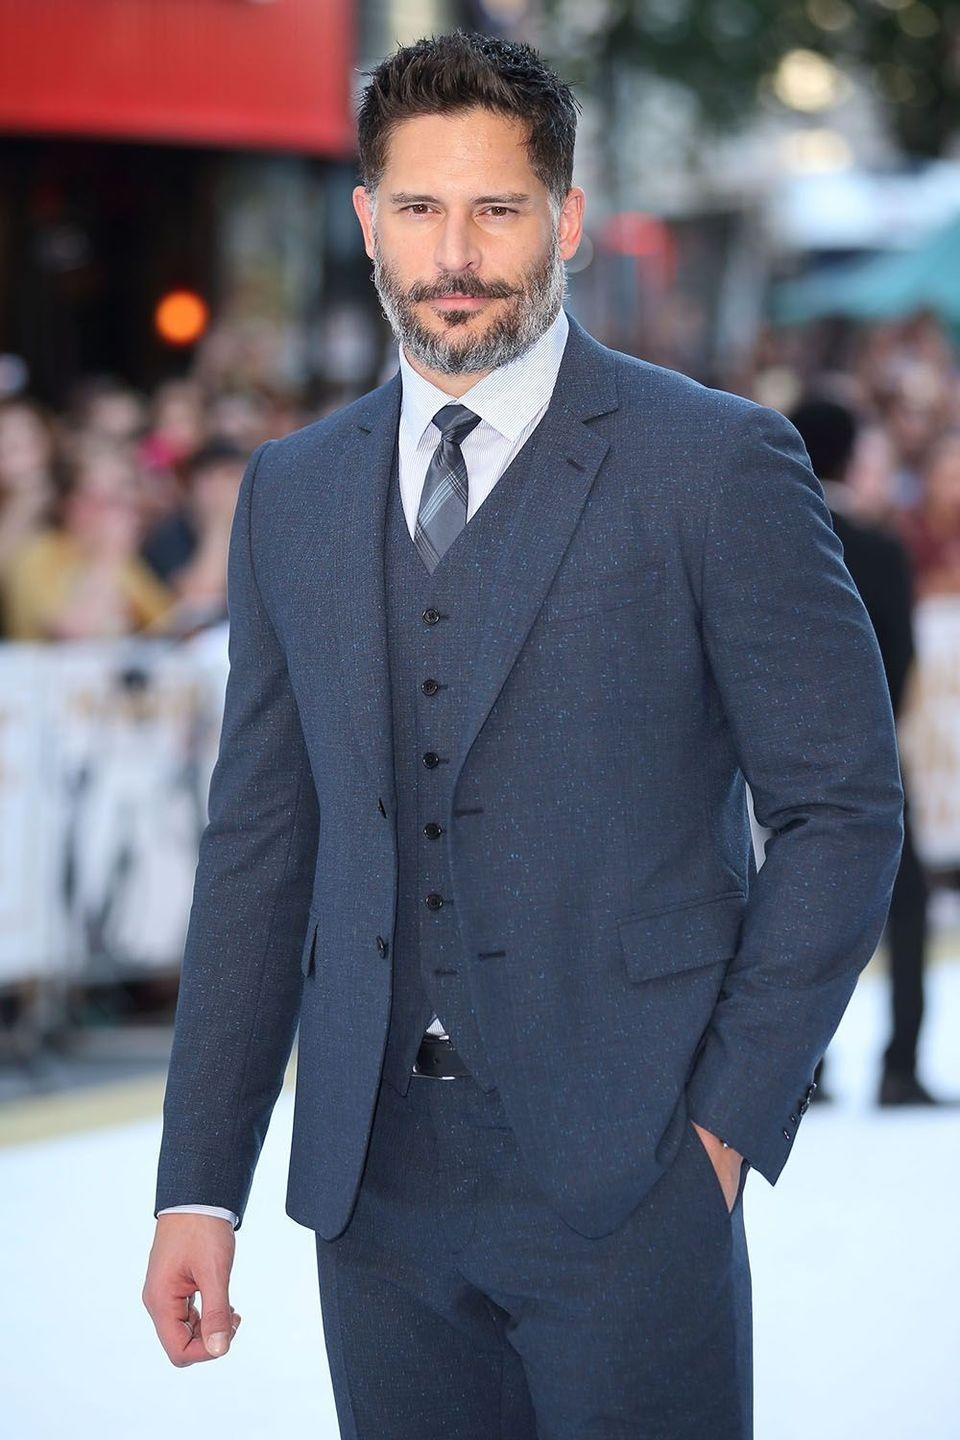 """<p>The <em>Magic Mike</em> star revealed that he didn't have much choice but to get sober in an interview with the <a href=""""http://www.huffingtonpost.com/2013/12/03/joe-manganiello-alcohol-problem_n_4379604.html"""" rel=""""nofollow noopener"""" target=""""_blank"""" data-ylk=""""slk:Huffington Post"""" class=""""link rapid-noclick-resp""""><em>Huffington Post</em></a>. Manganiello recalls the struggle: """"I was homeless, careless and broke with no career, so yes, it was worth it [to get sober].""""</p>"""